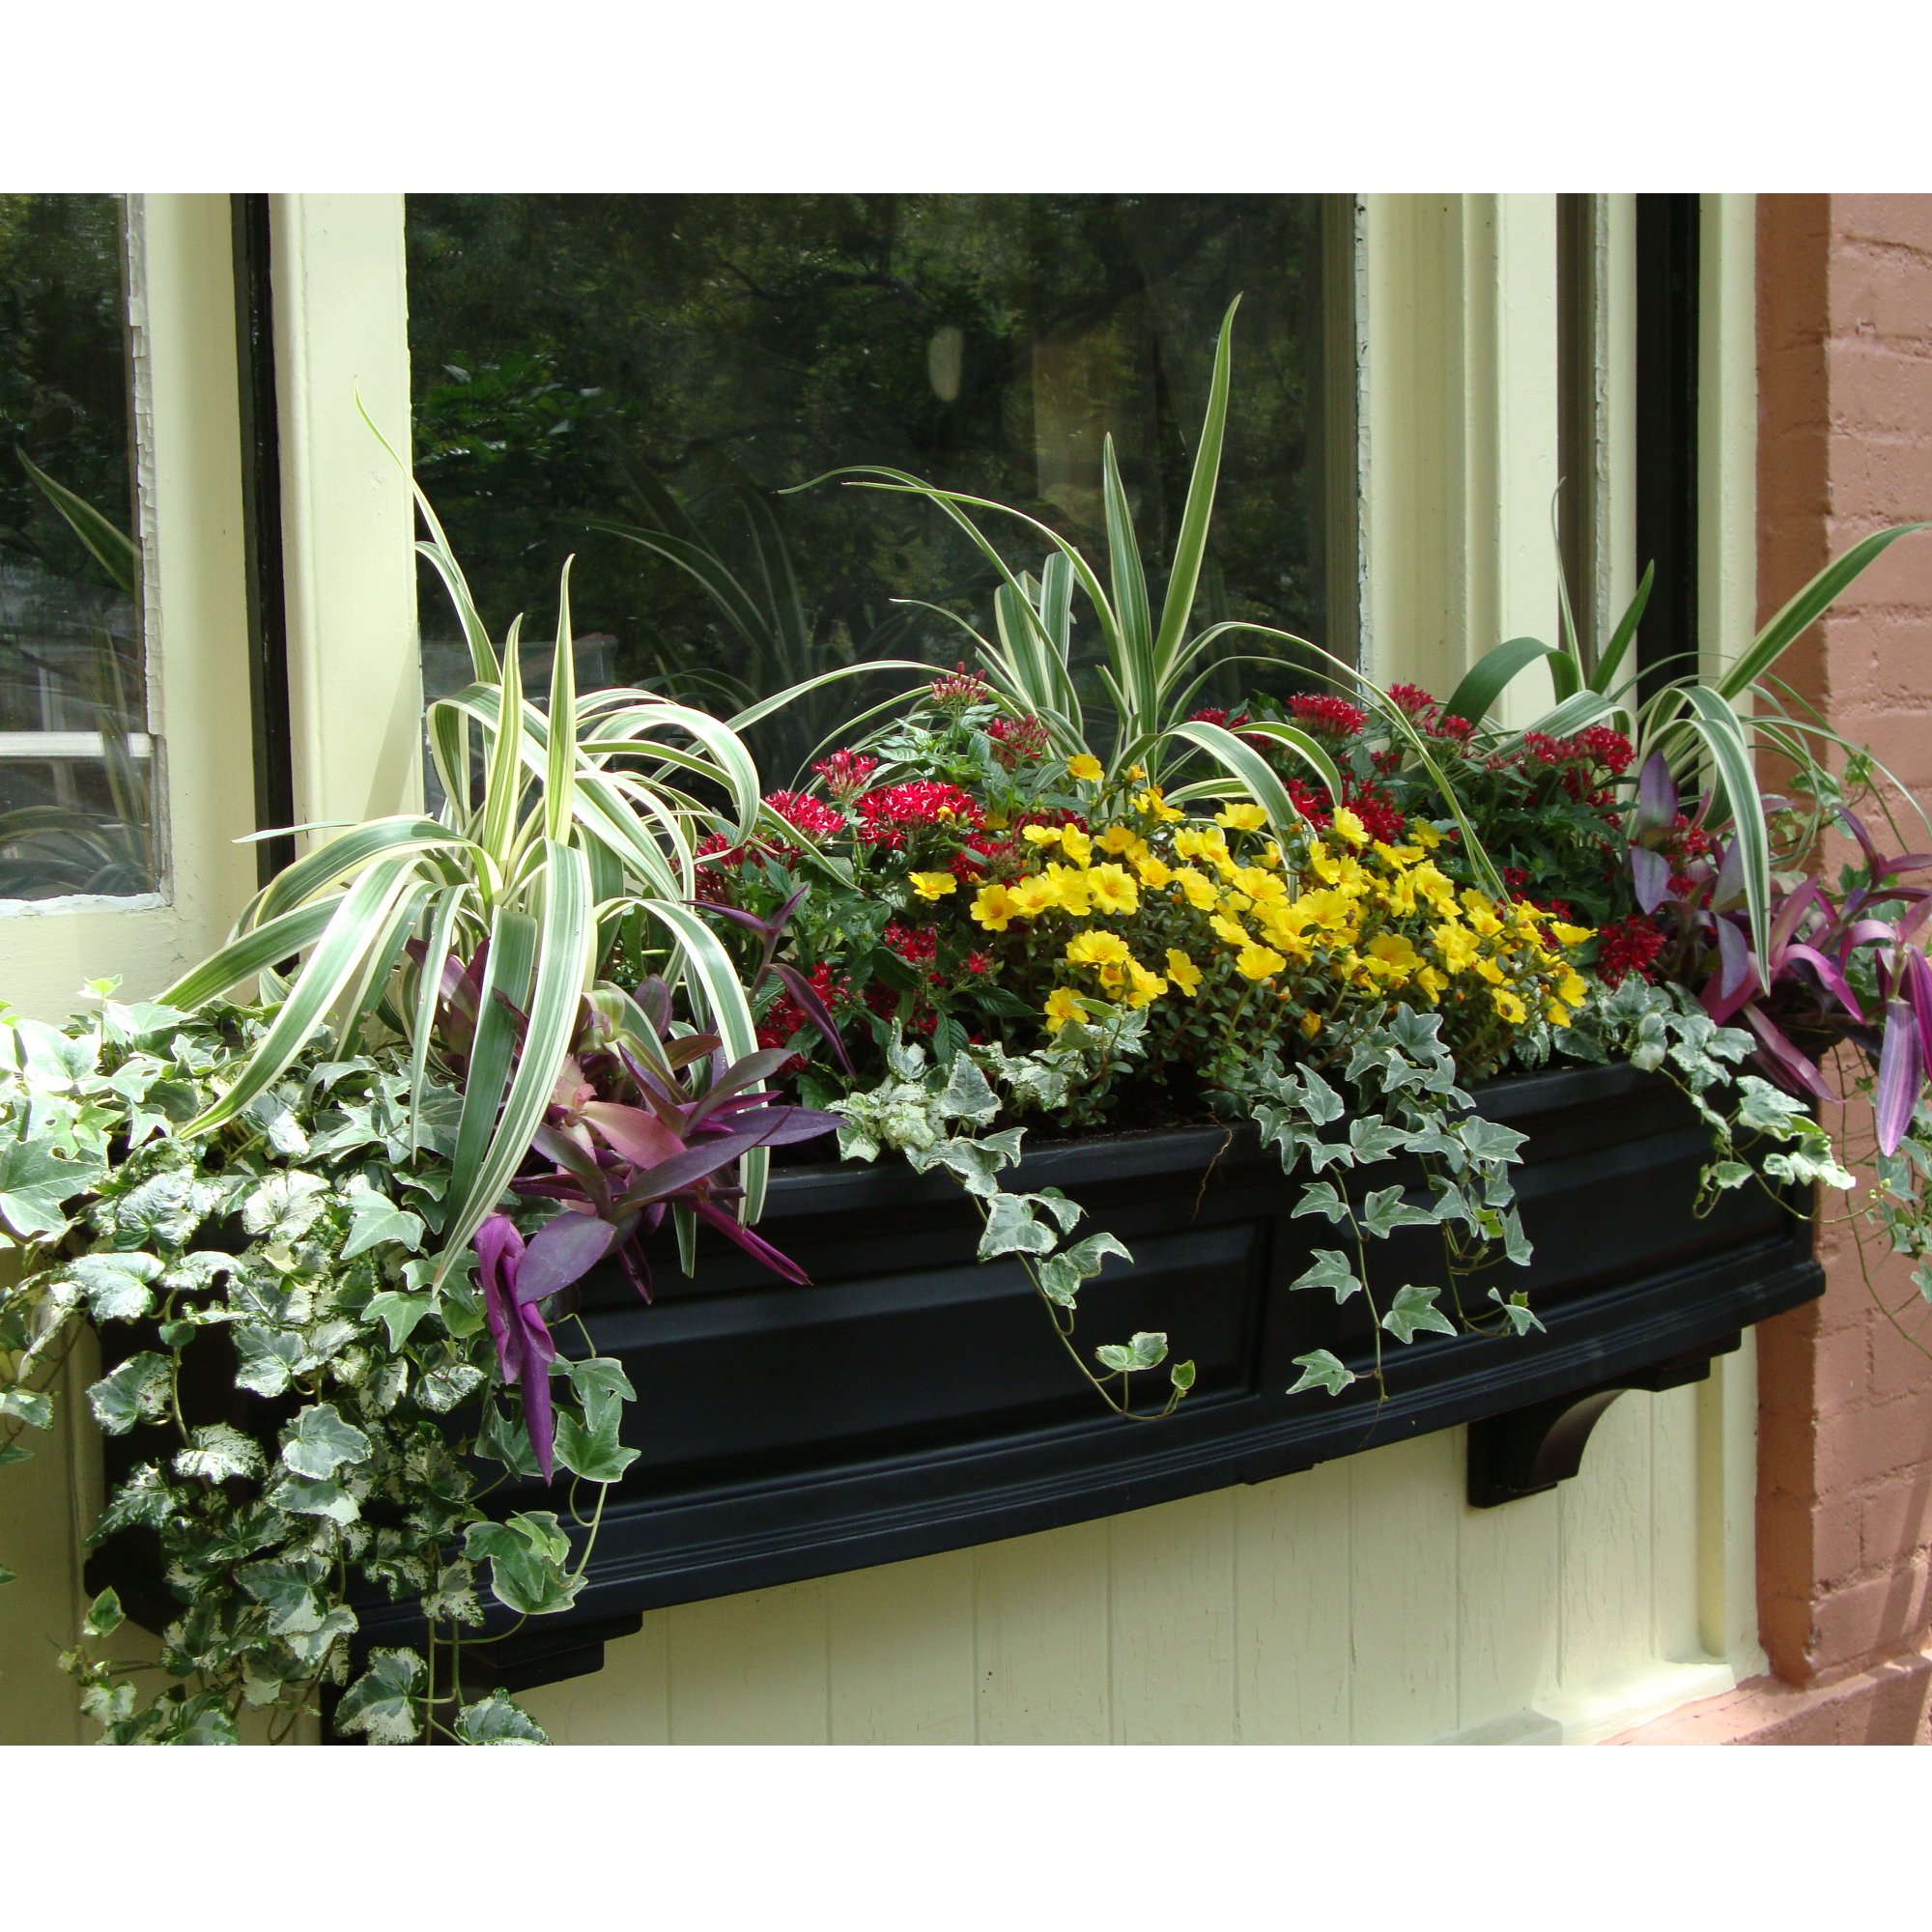 Nantucket 5' Window Box Planter by Mayne